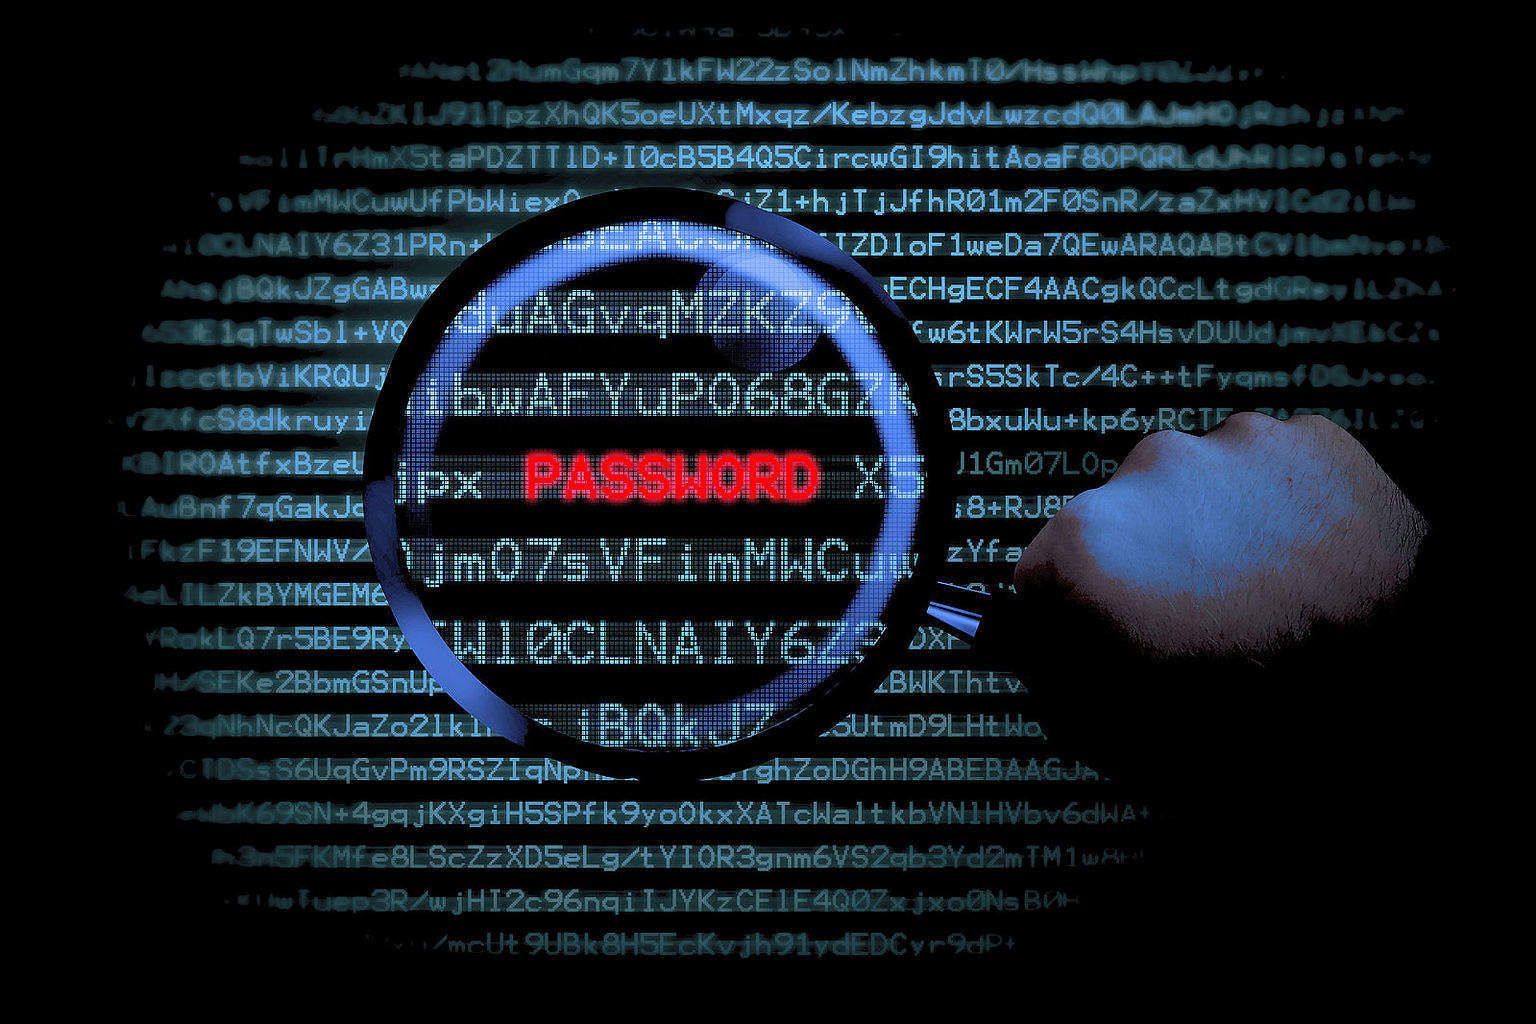 Online Security: Strong Passwords are a First Line Defense